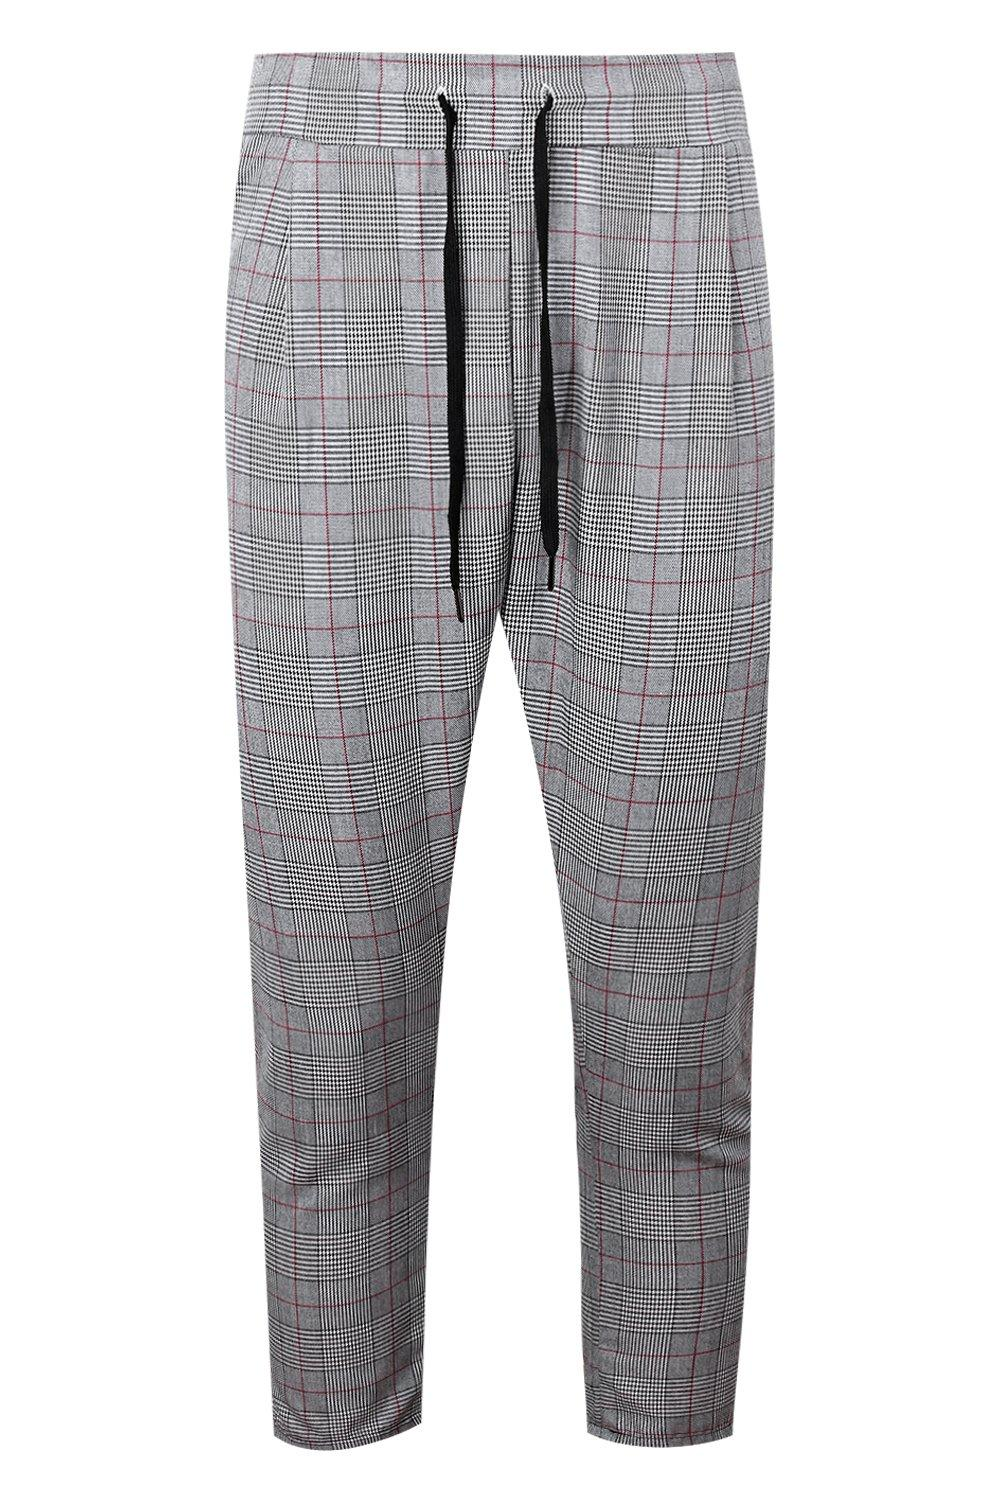 boohooMAN grey Woven Checked Jogger With Red Stripe